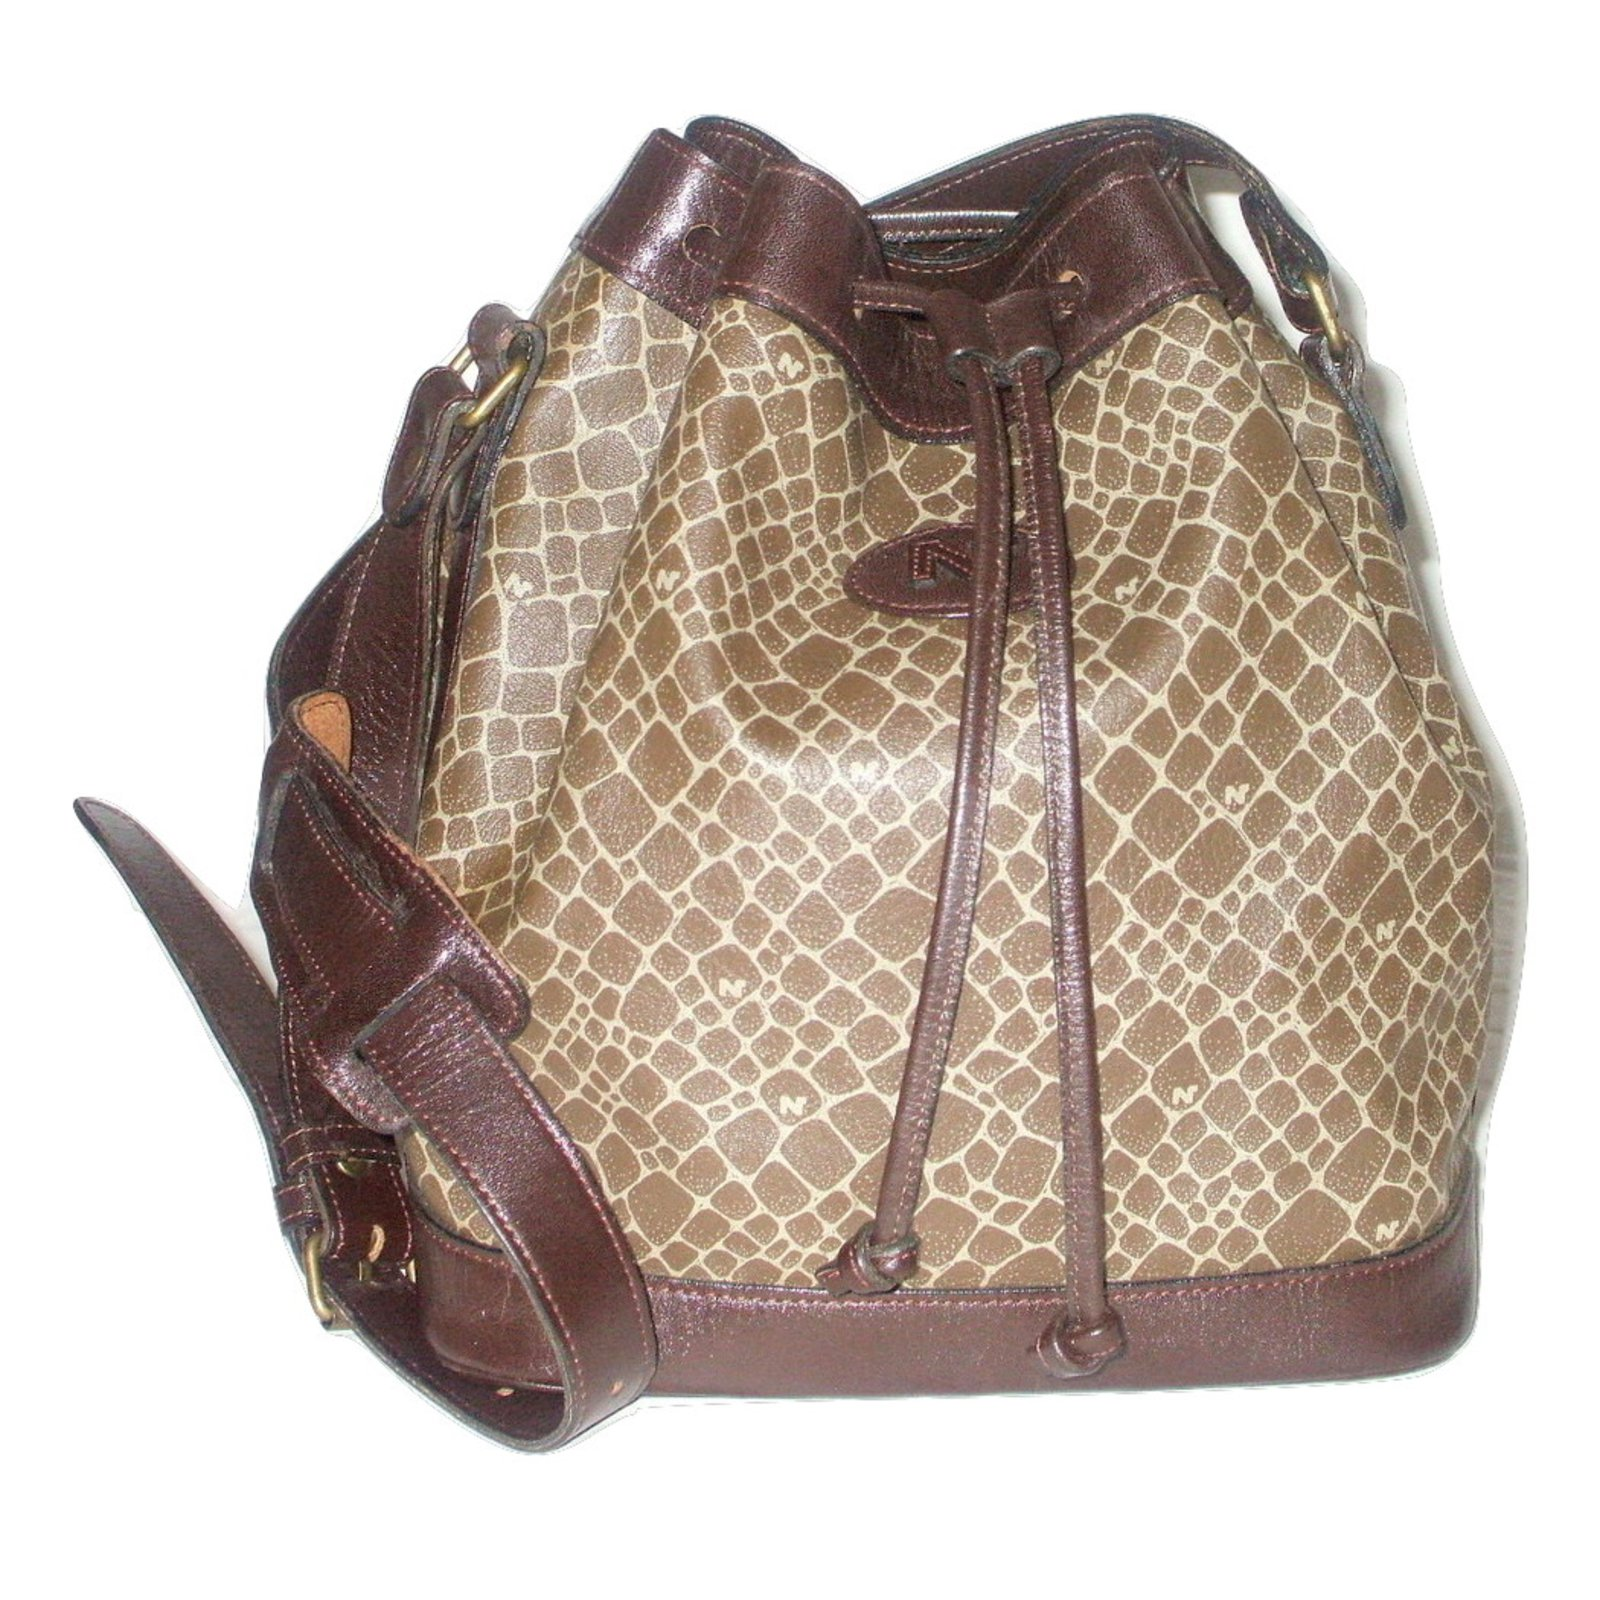 Nina Ricci Vintage Bucket Bag Handbags Synthetic Brown Ref 22891